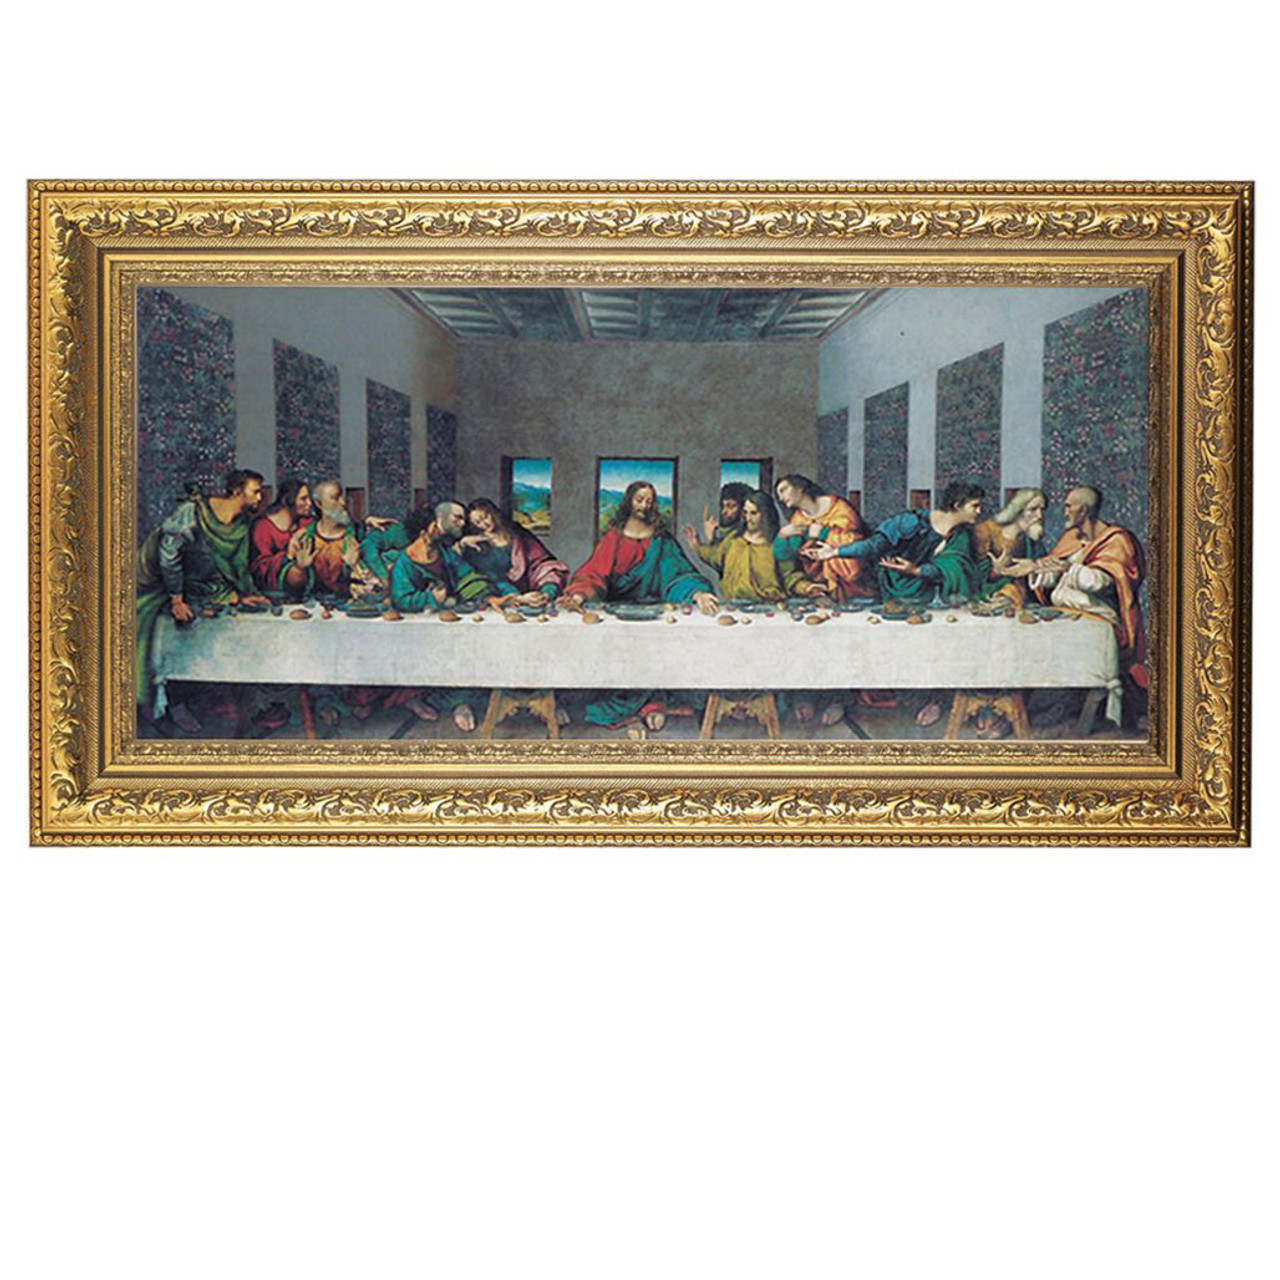 Last Supper by DaVinci 14x26IN Framed